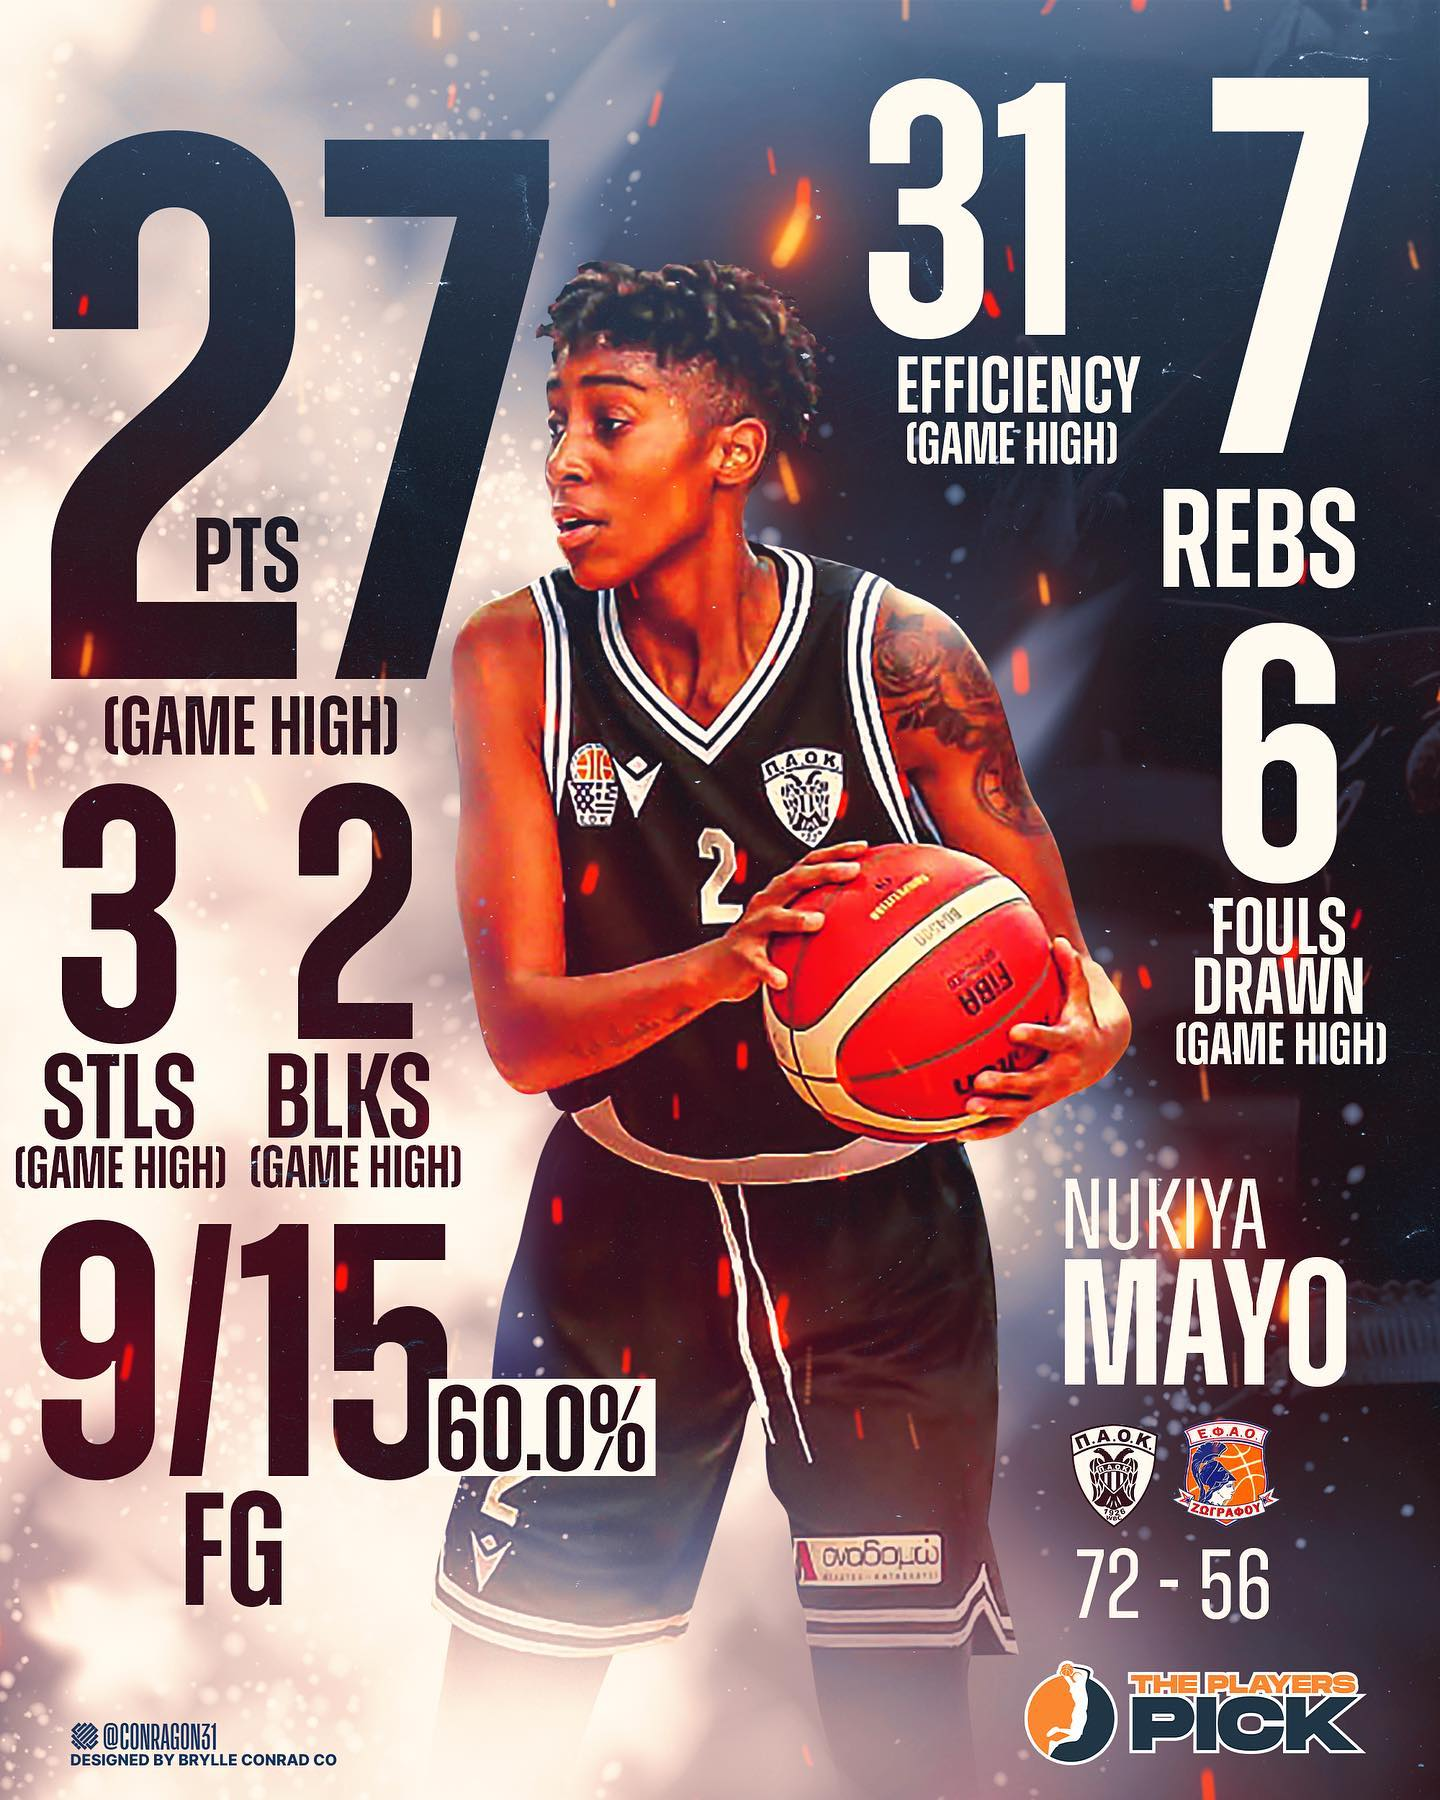 27 points & 7 rebounds for MVP Nukiya Mayo of PAOK!